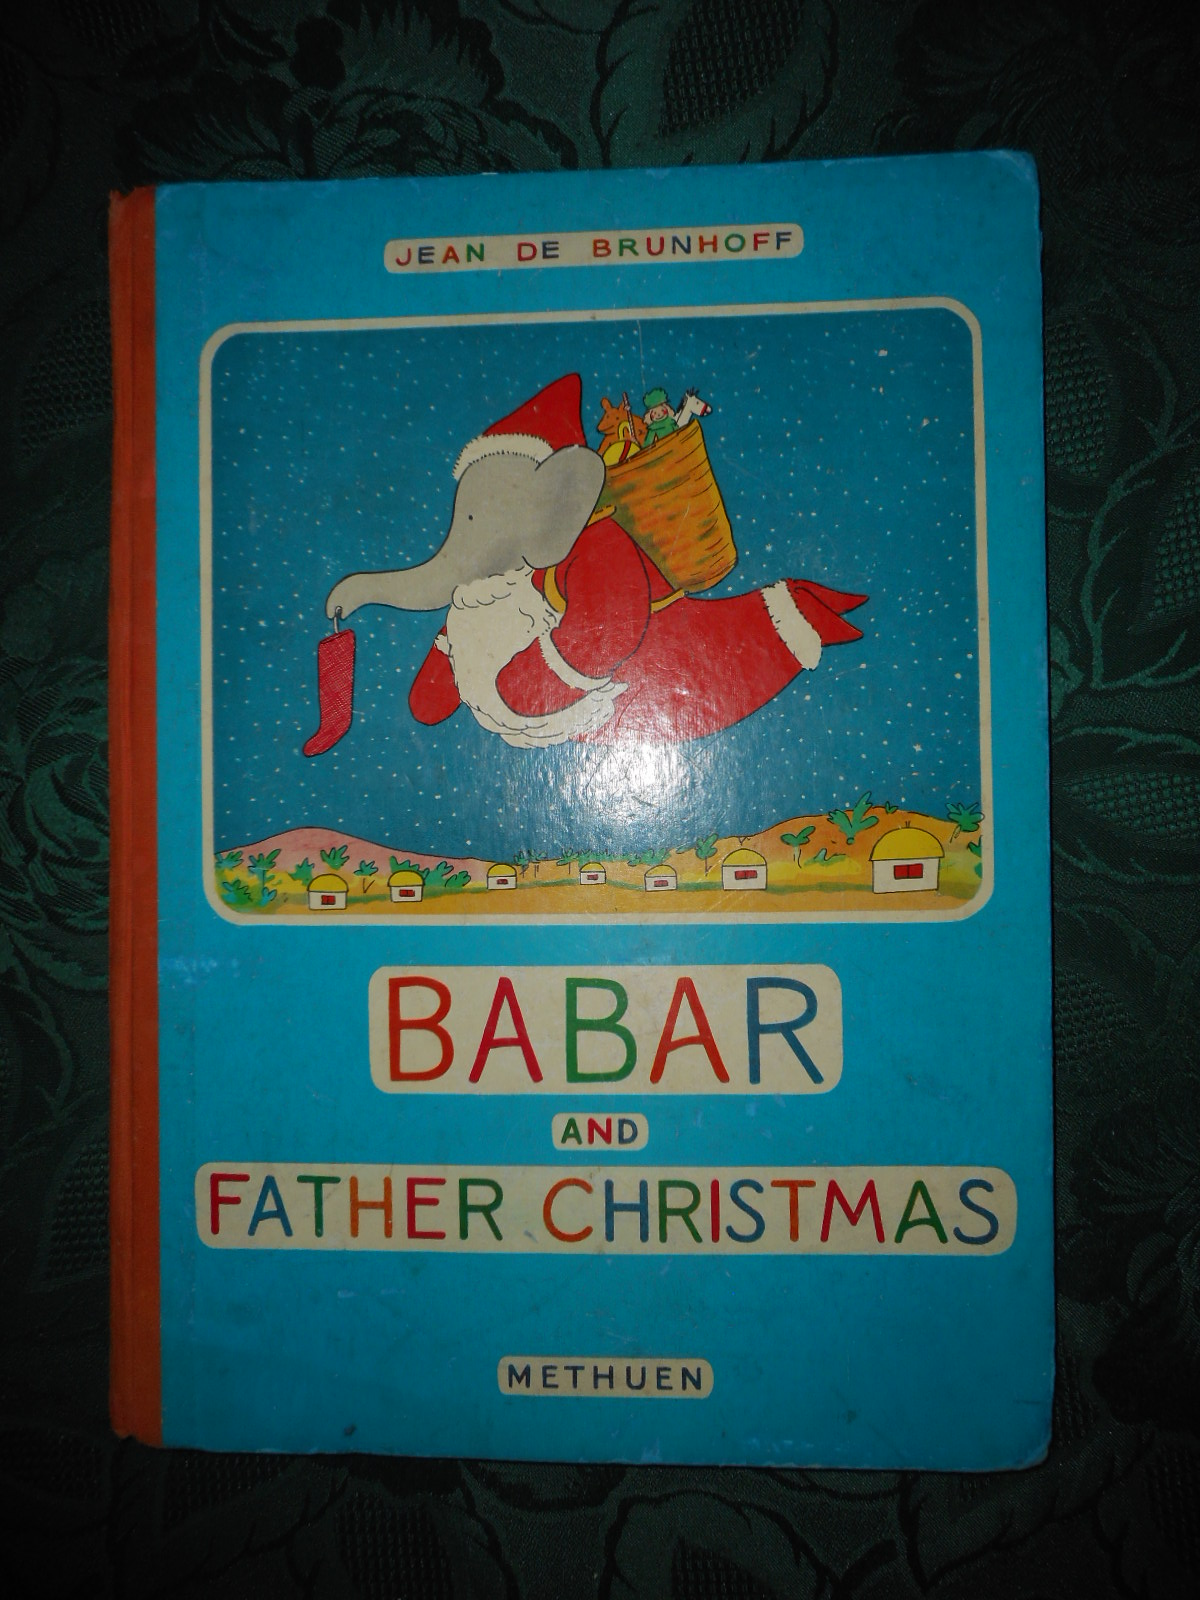 Barbar and Father Christmas